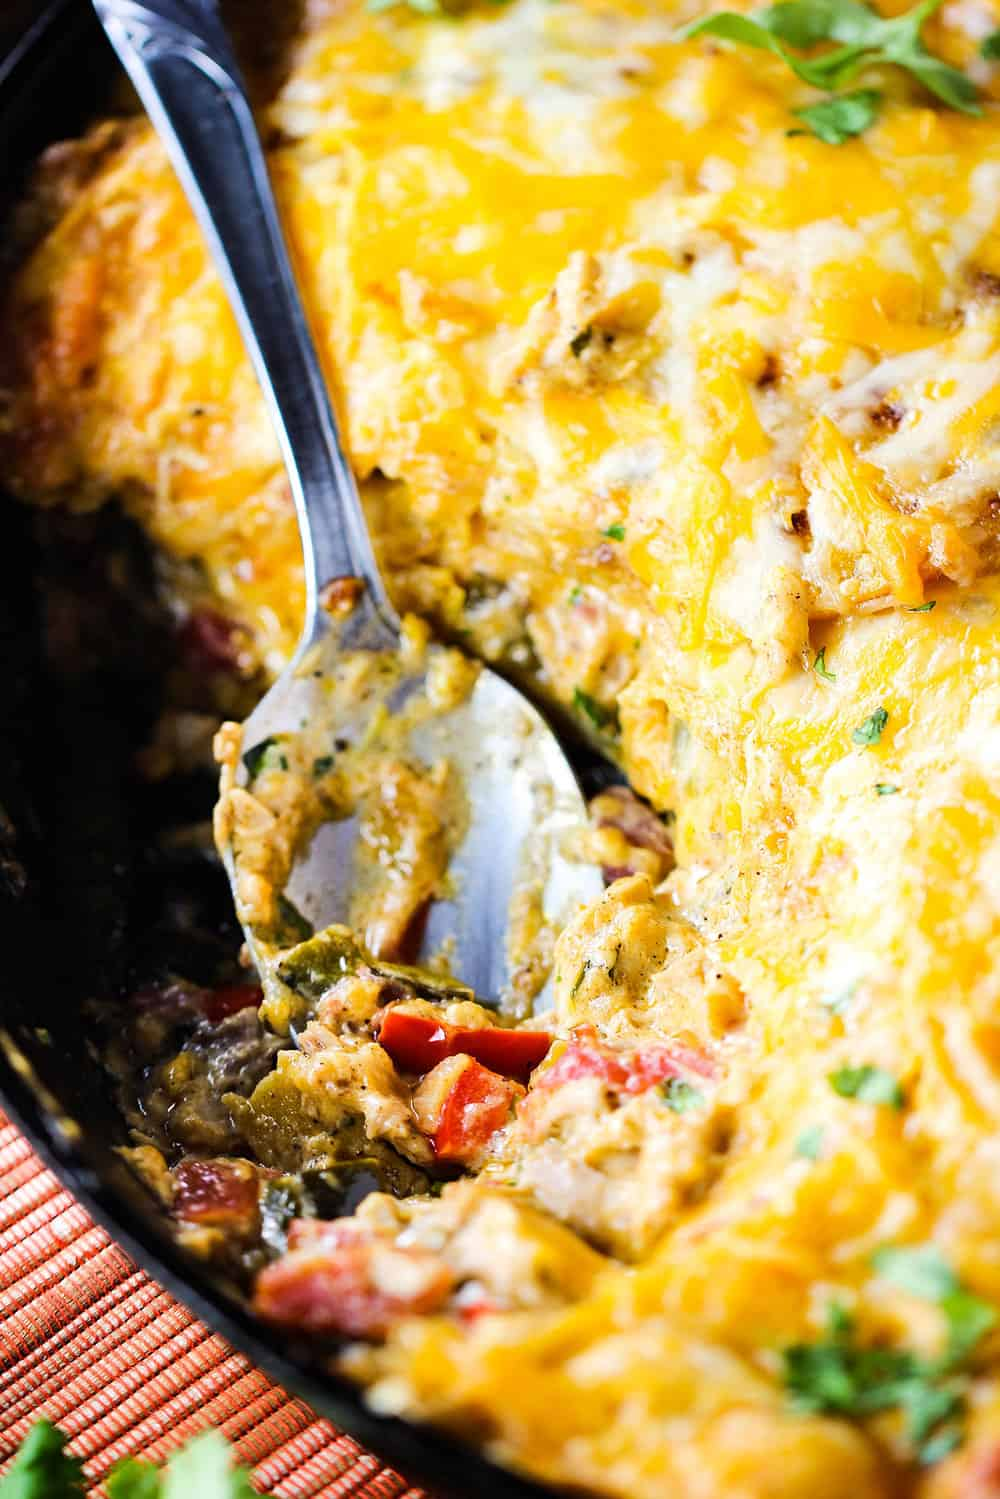 King Ranch casserole in a large cast iron skillet with a spoon in it